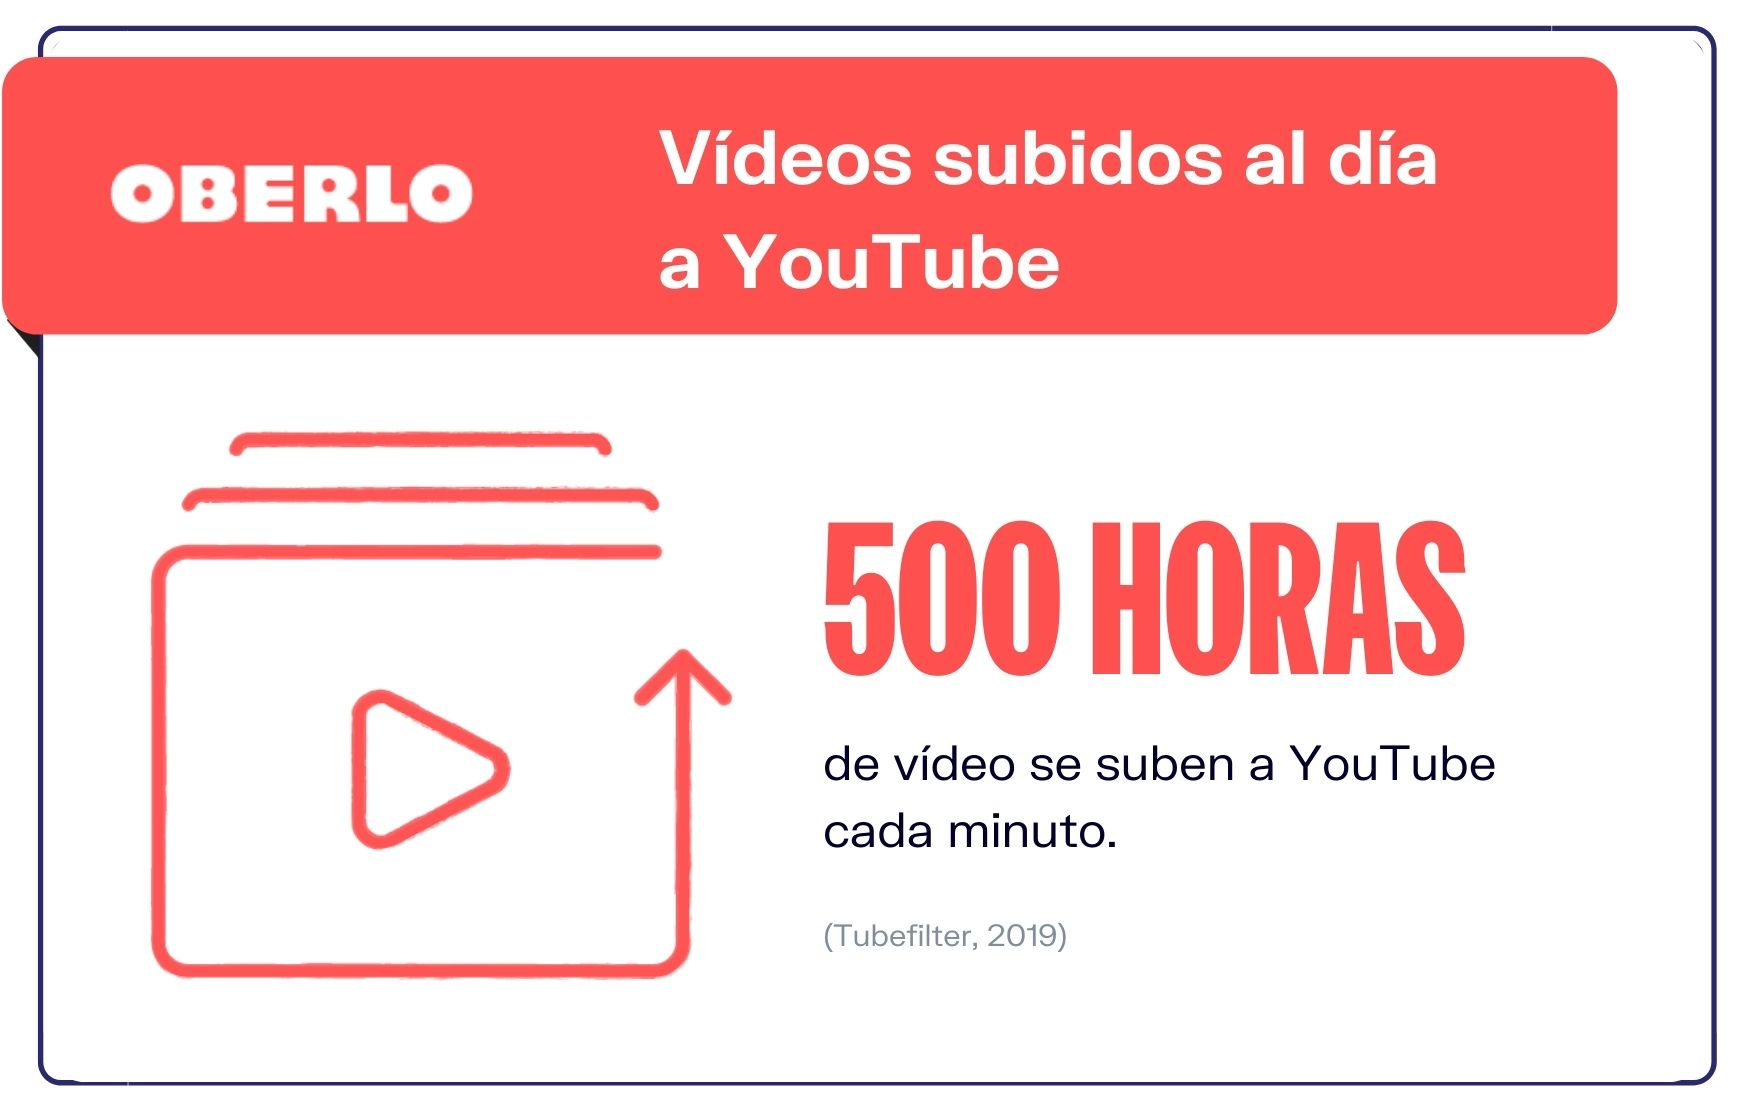 YouTube-Estadisticas-Videos-subidos-diariamente-a-youtube